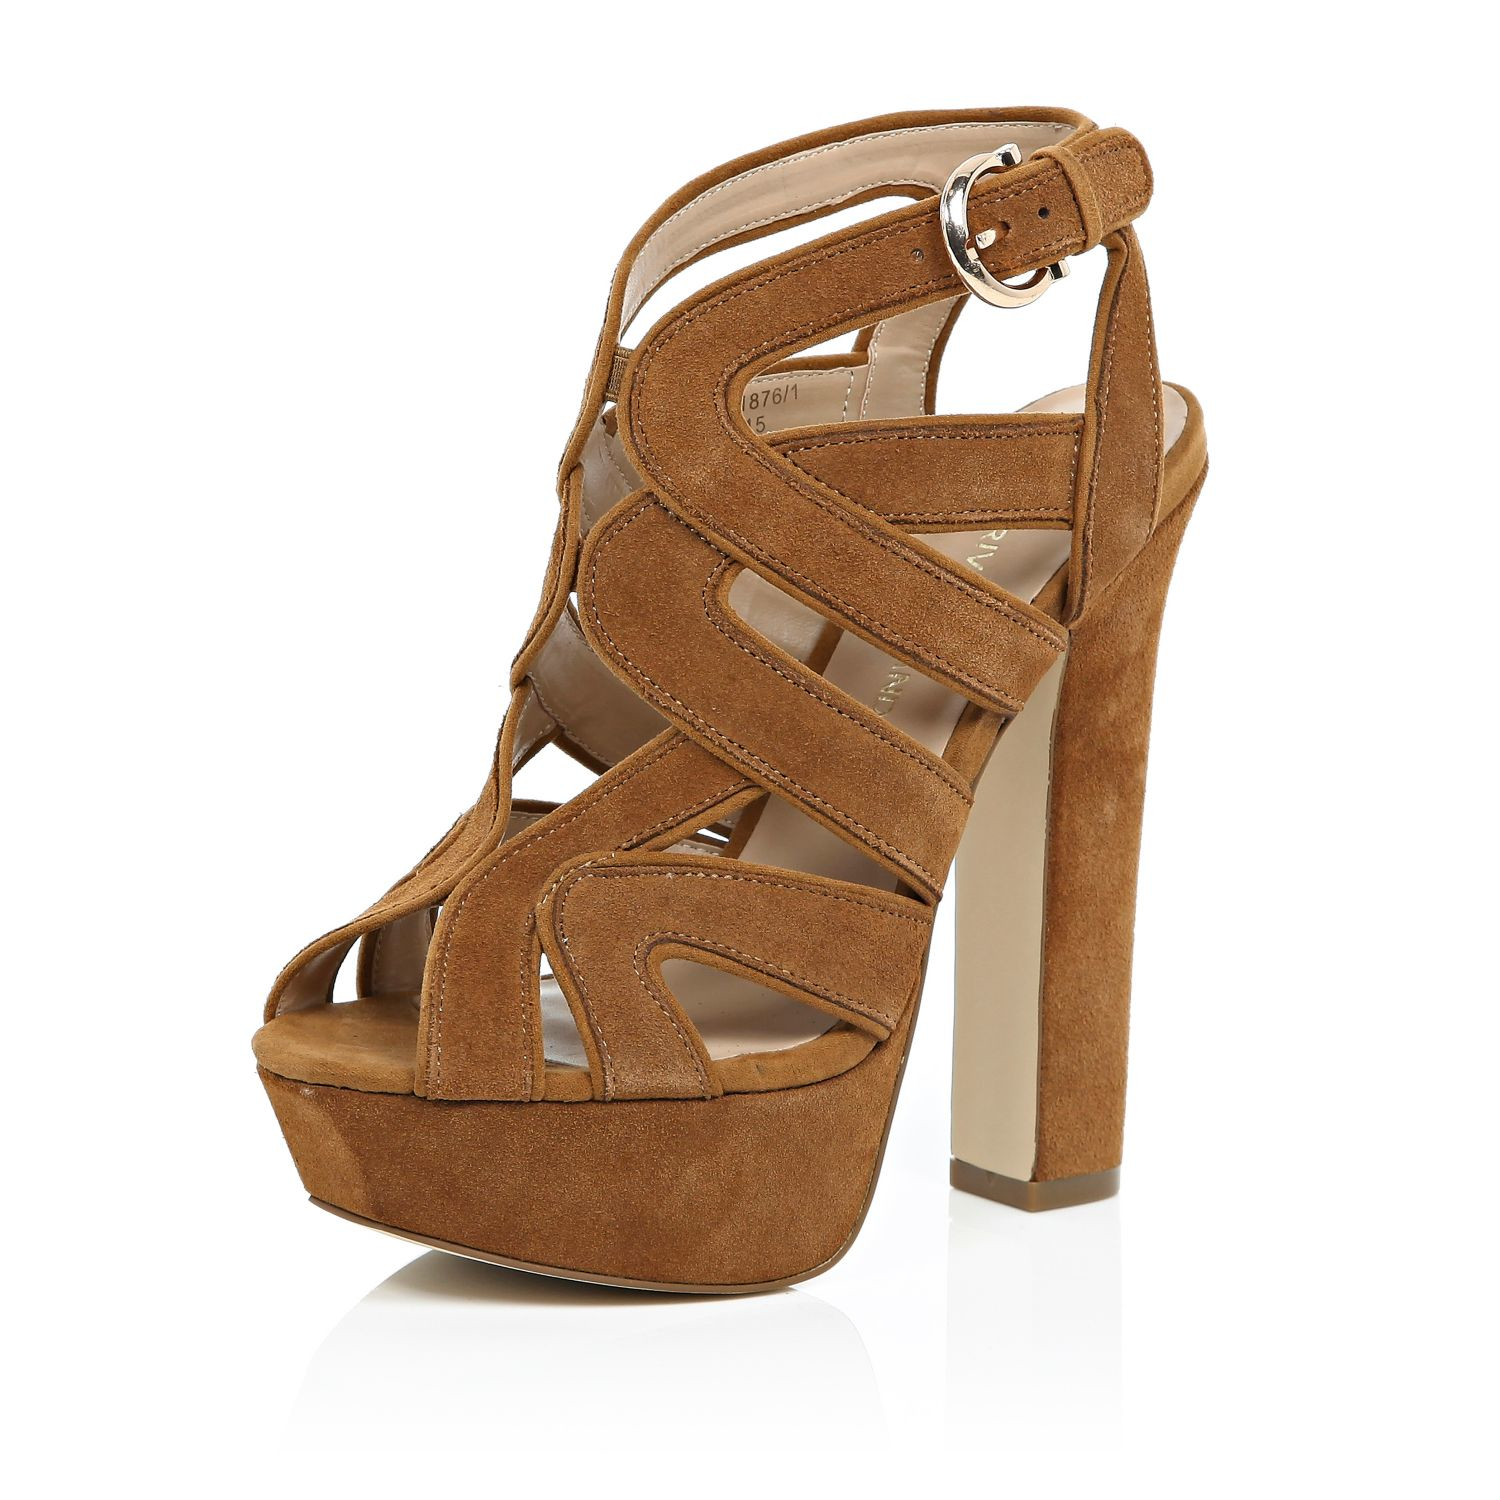 Brown Platform Heels - Is Heel